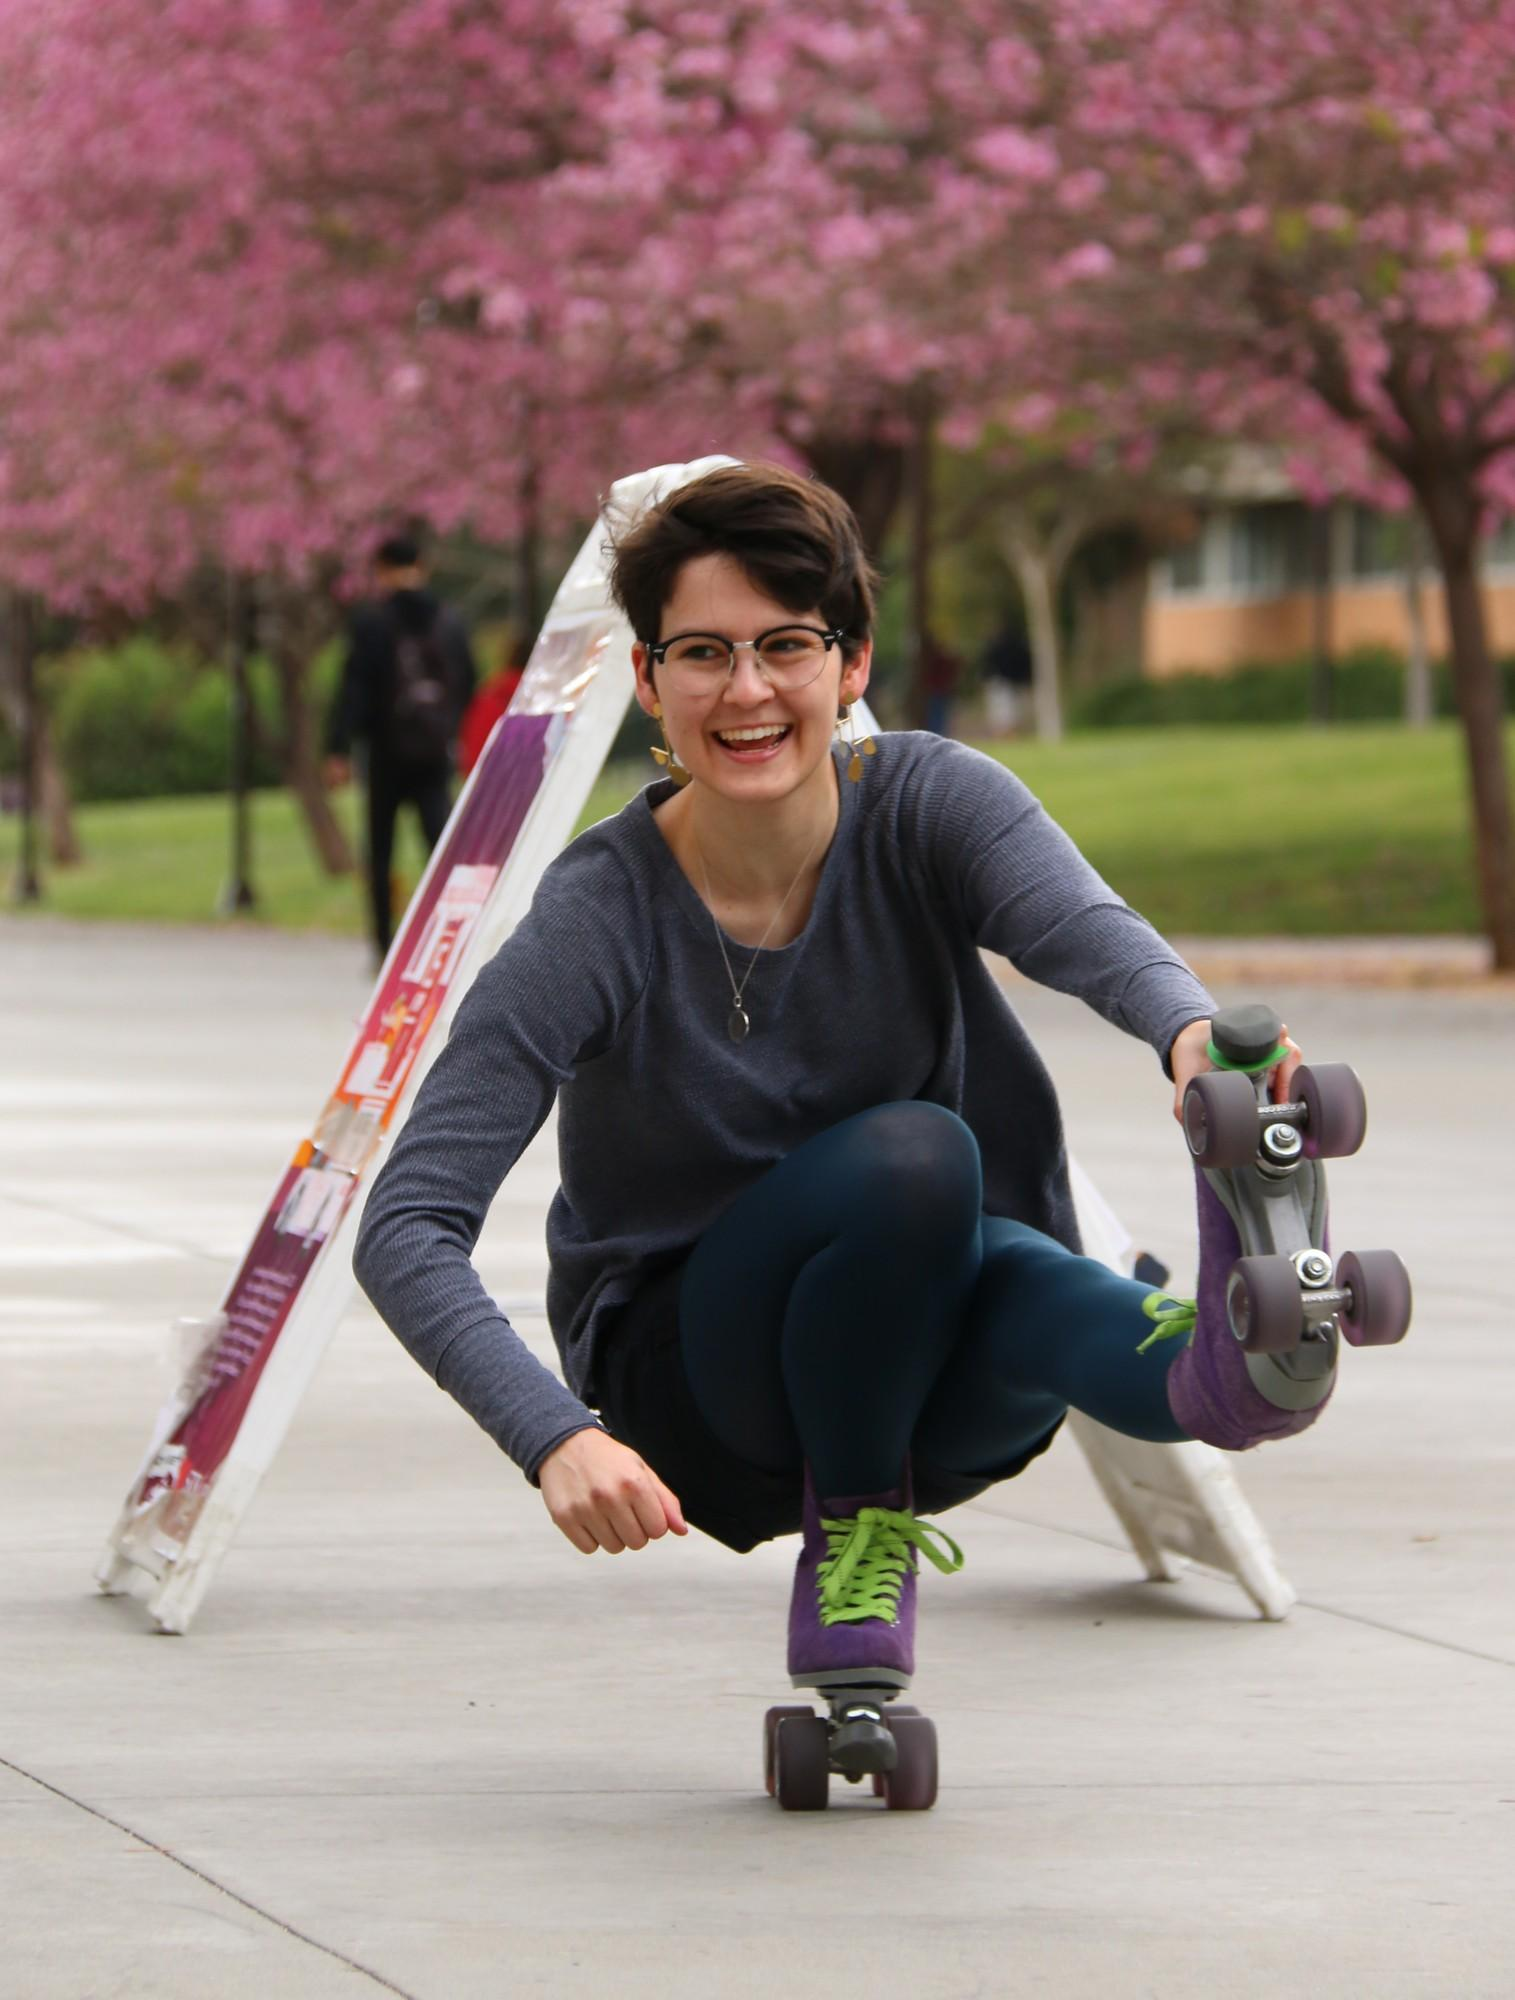 CSUN student, Elinor Shapiro, 21, successfully rolls through an A frame sign on campus while rollerskating in between classes on Tuesday, April 16, 2019. Photo credit: Emmanuelle Roumain